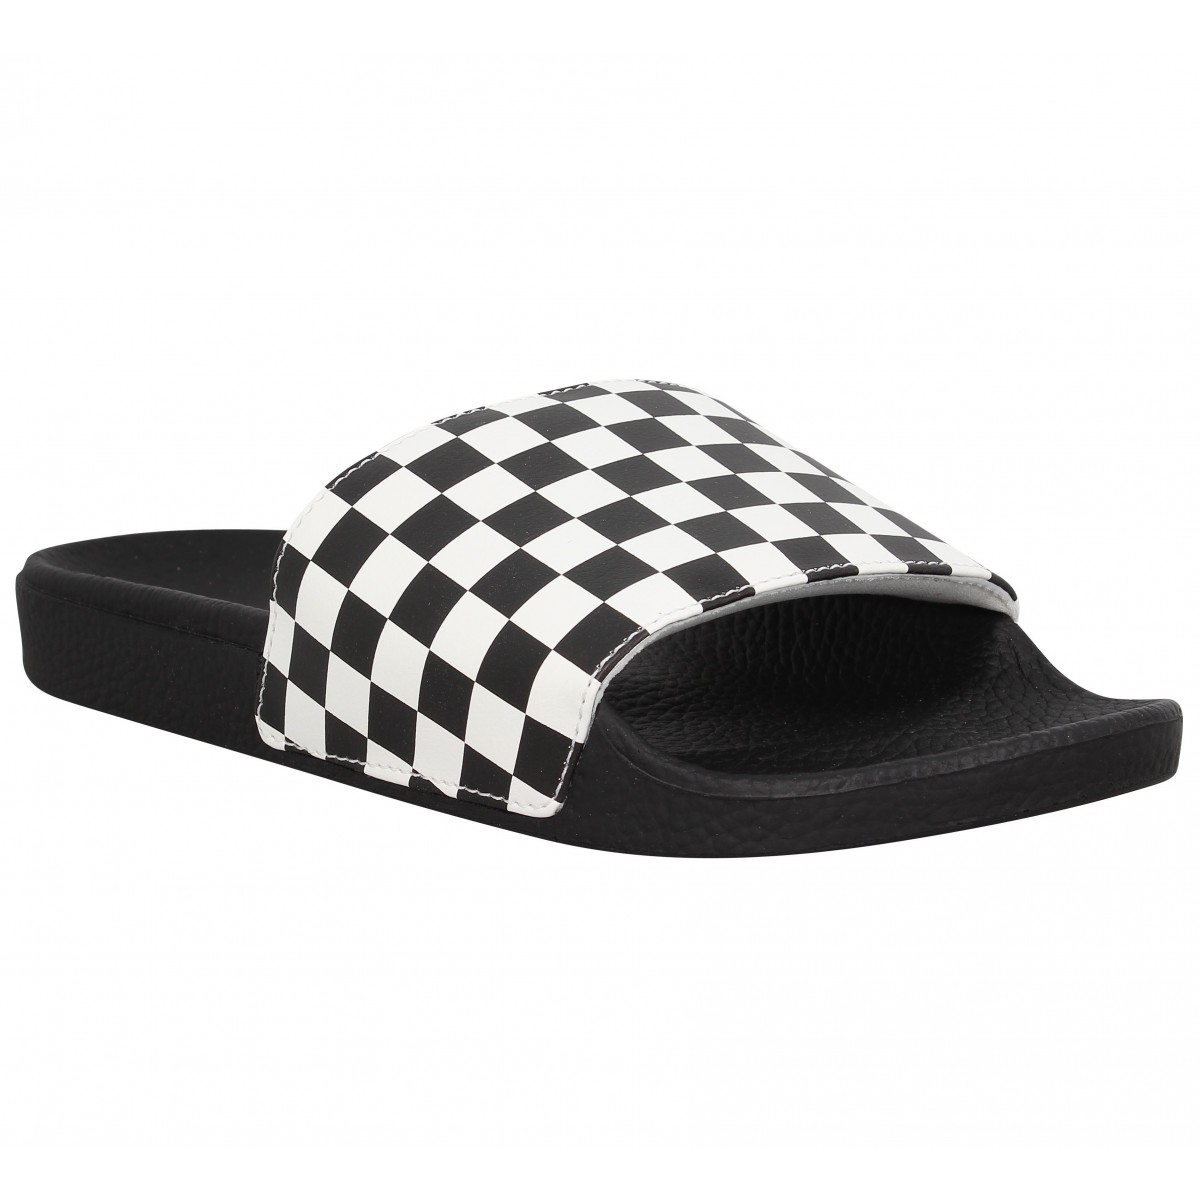 Mules VANS Slide On caoutchouc Damier